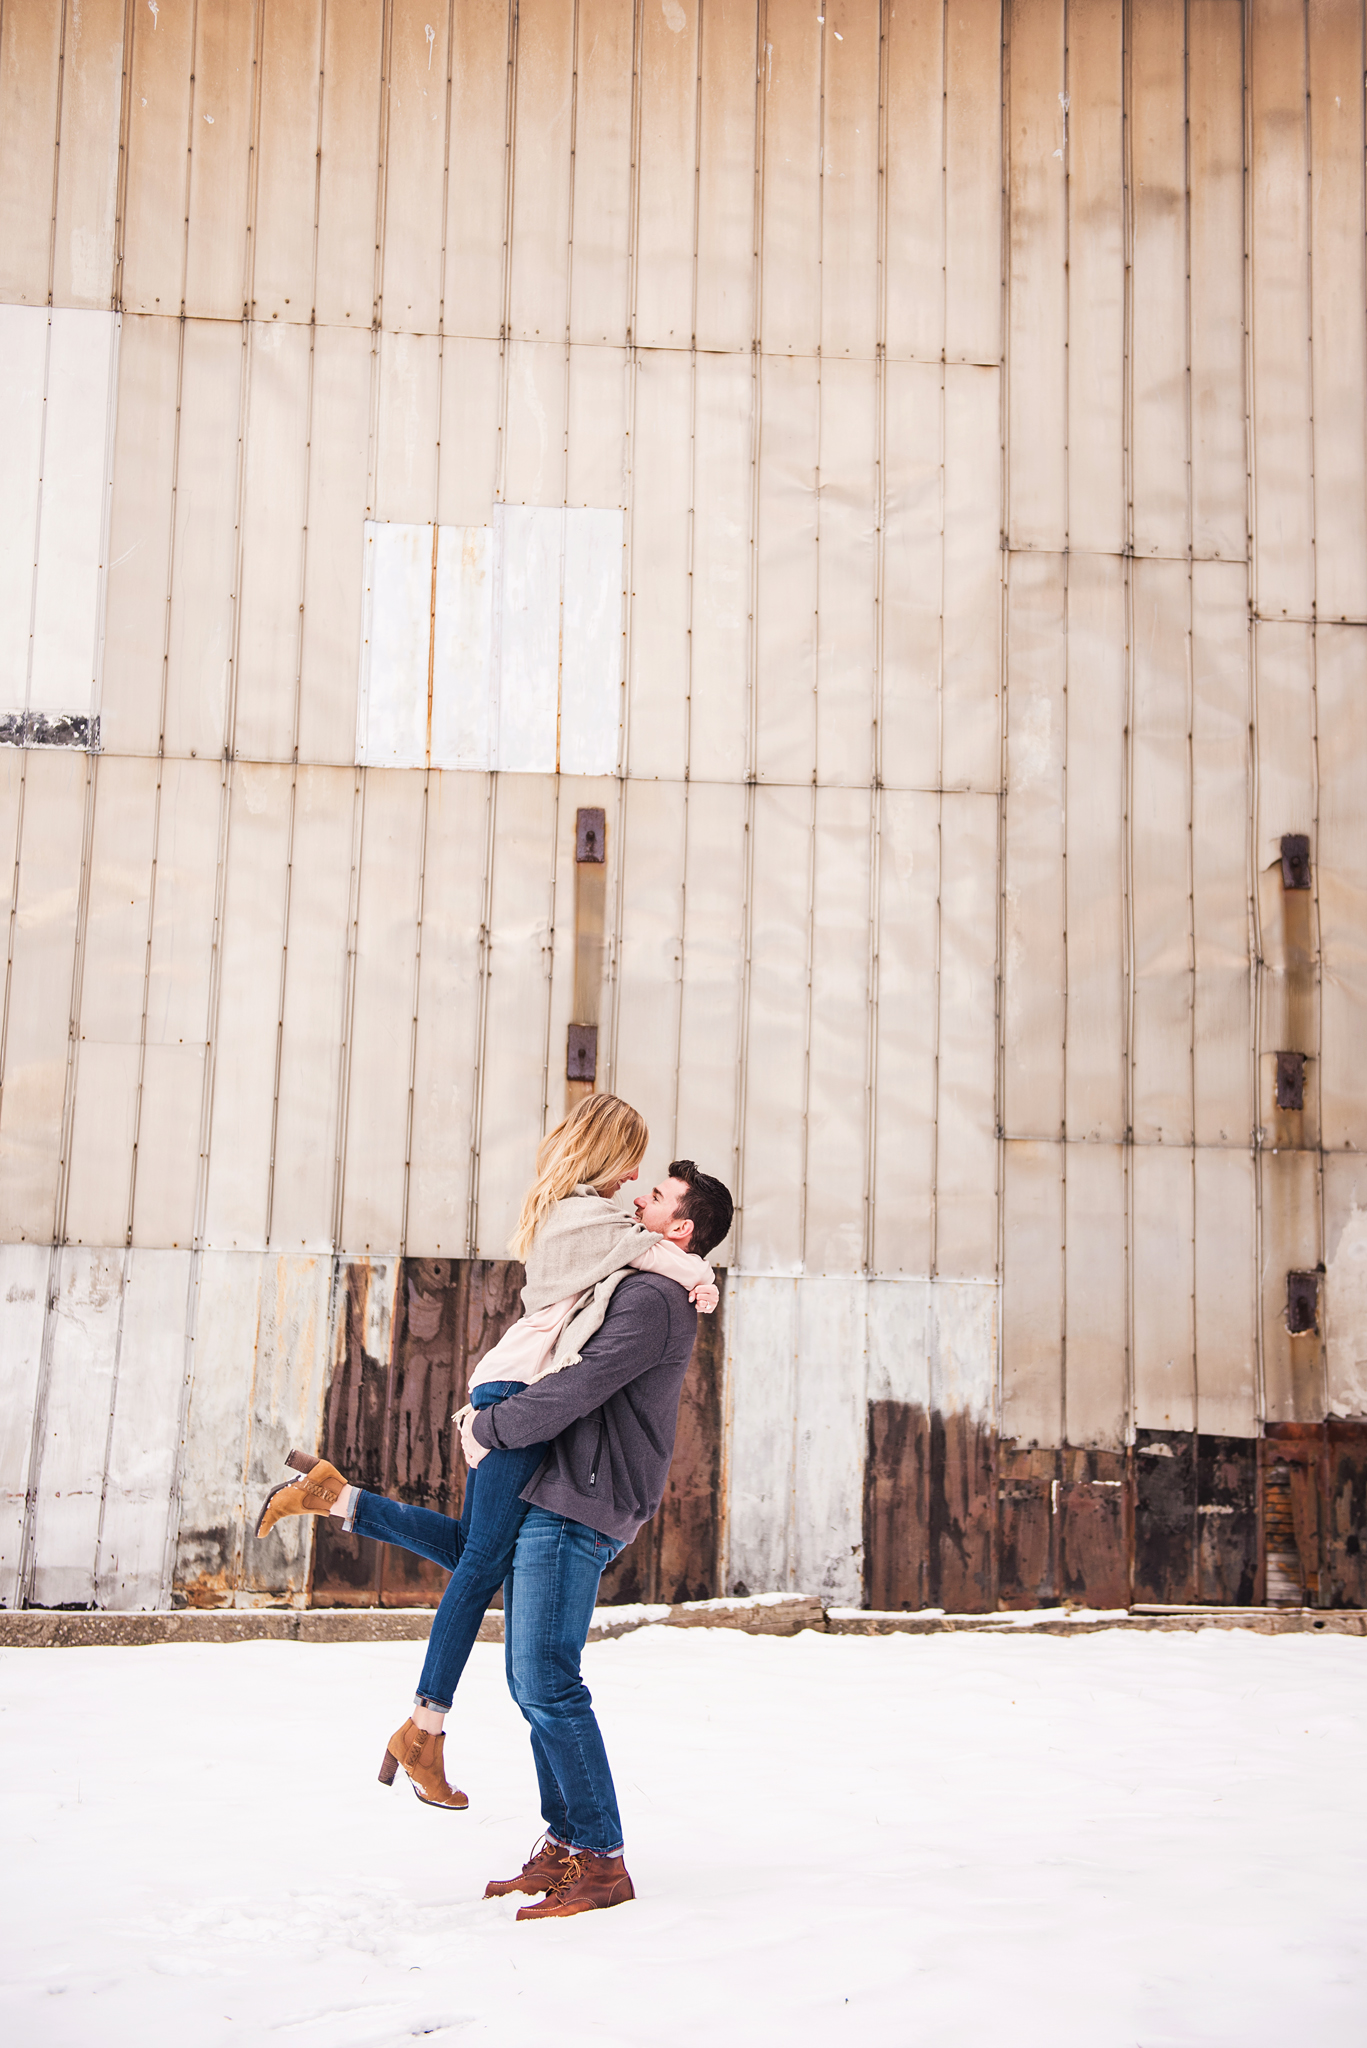 Schoen_Place_Rochester_Engagement_Session_JILL_STUDIO_Rochester_NY_Photographer_DSC_1231.jpg